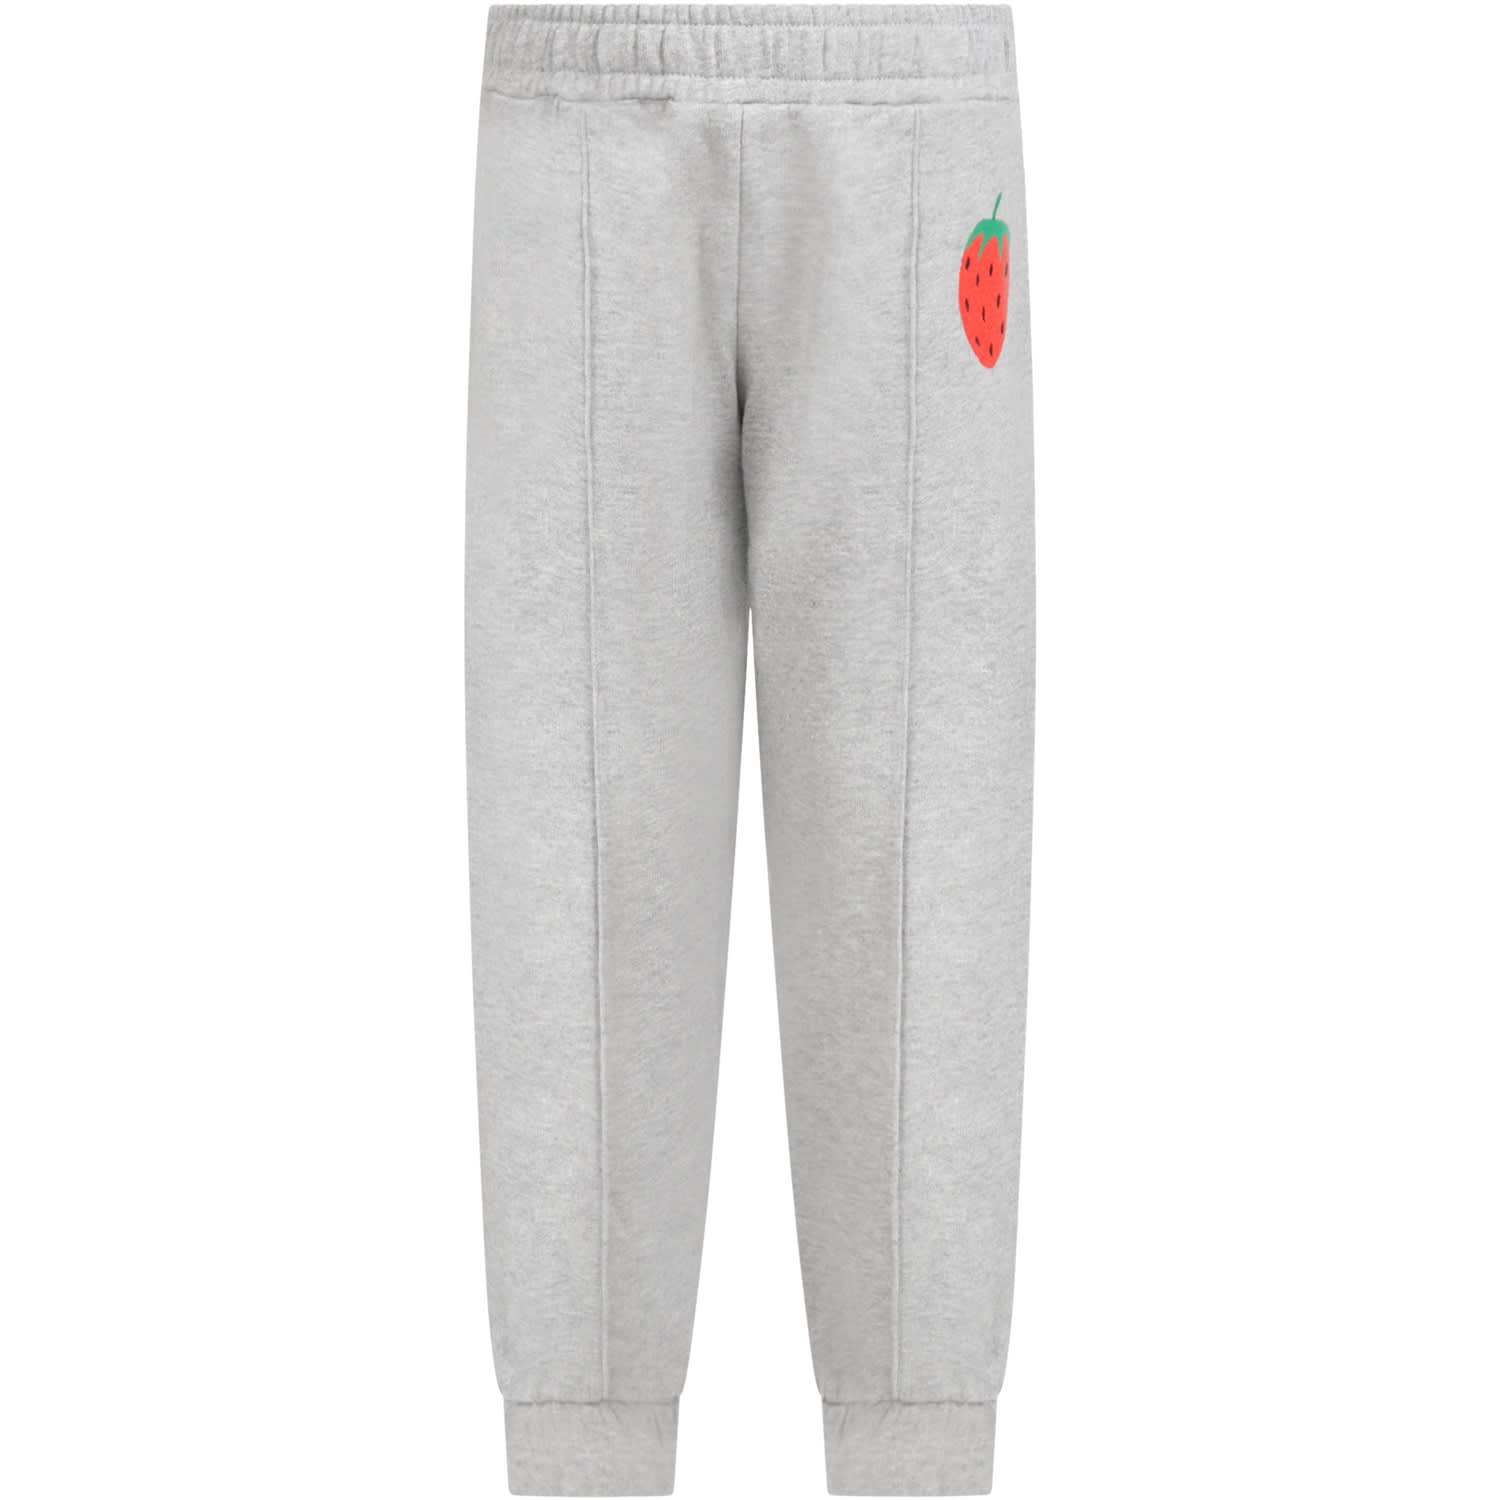 Mini Rodini GRAY SWEATPANTS FOR KIDS